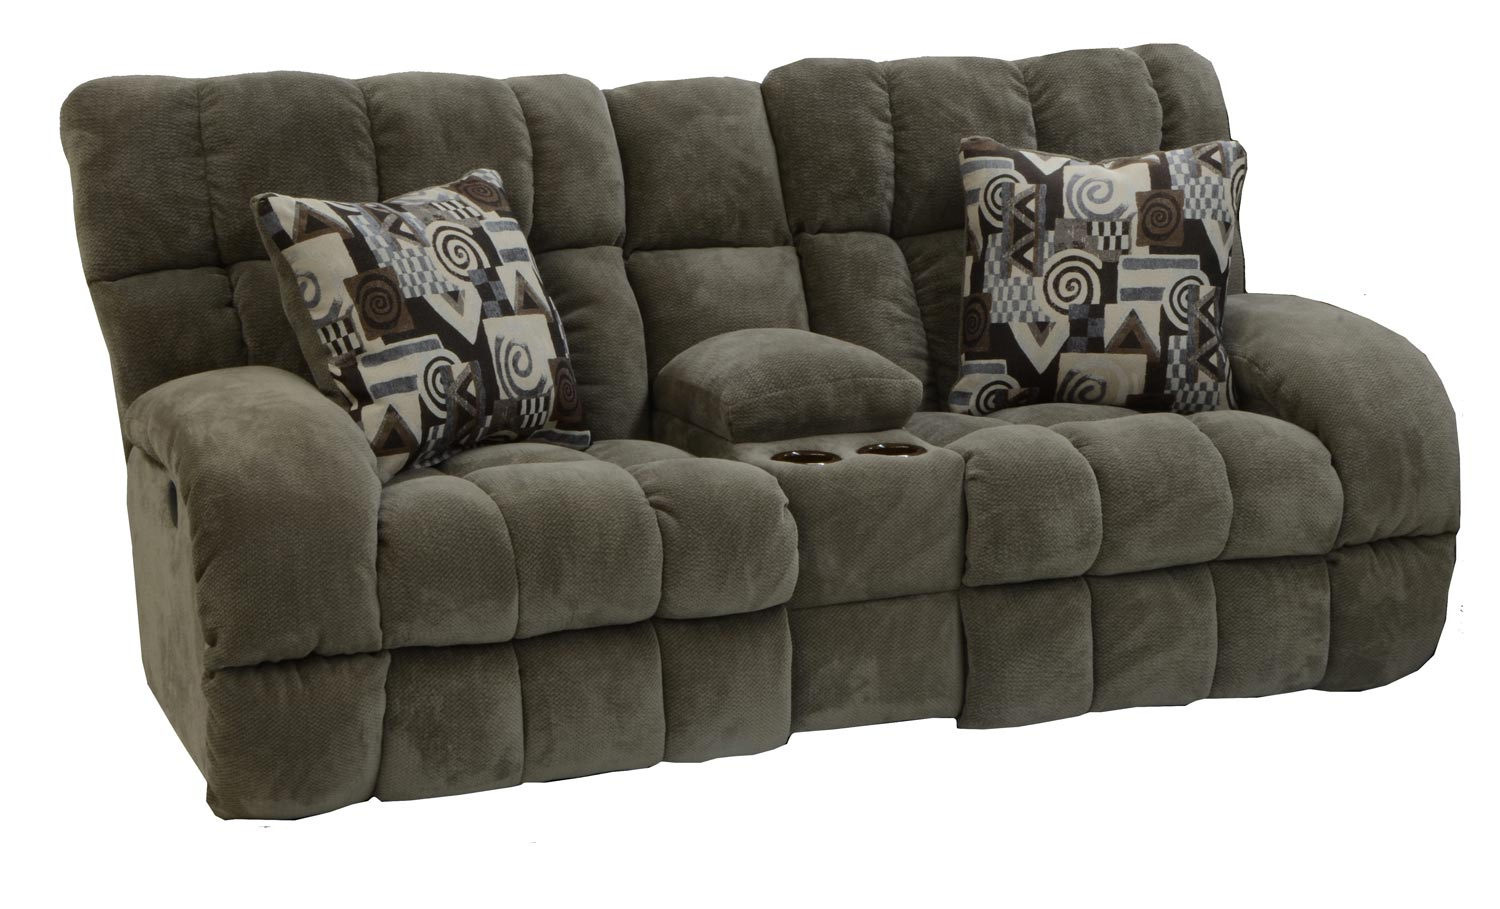 Catnapper Siesta Lay Flat Reclining Sectional Sofa Set A Porcini